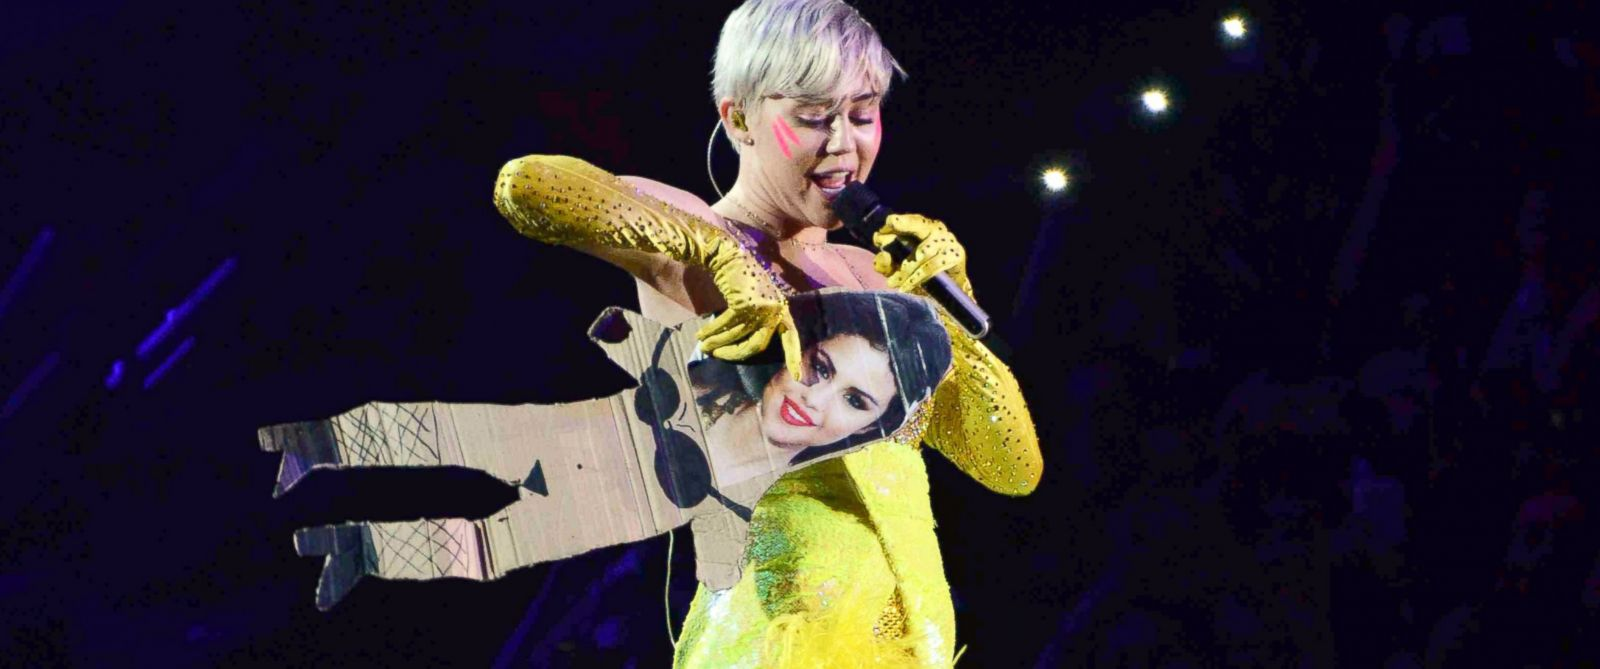 PHOTO: Miley Cyrus holds a cardboard cutout with Selena Gomezs photograph on it during her concert at the Forum in Milan, Italy on June 8, 2014.